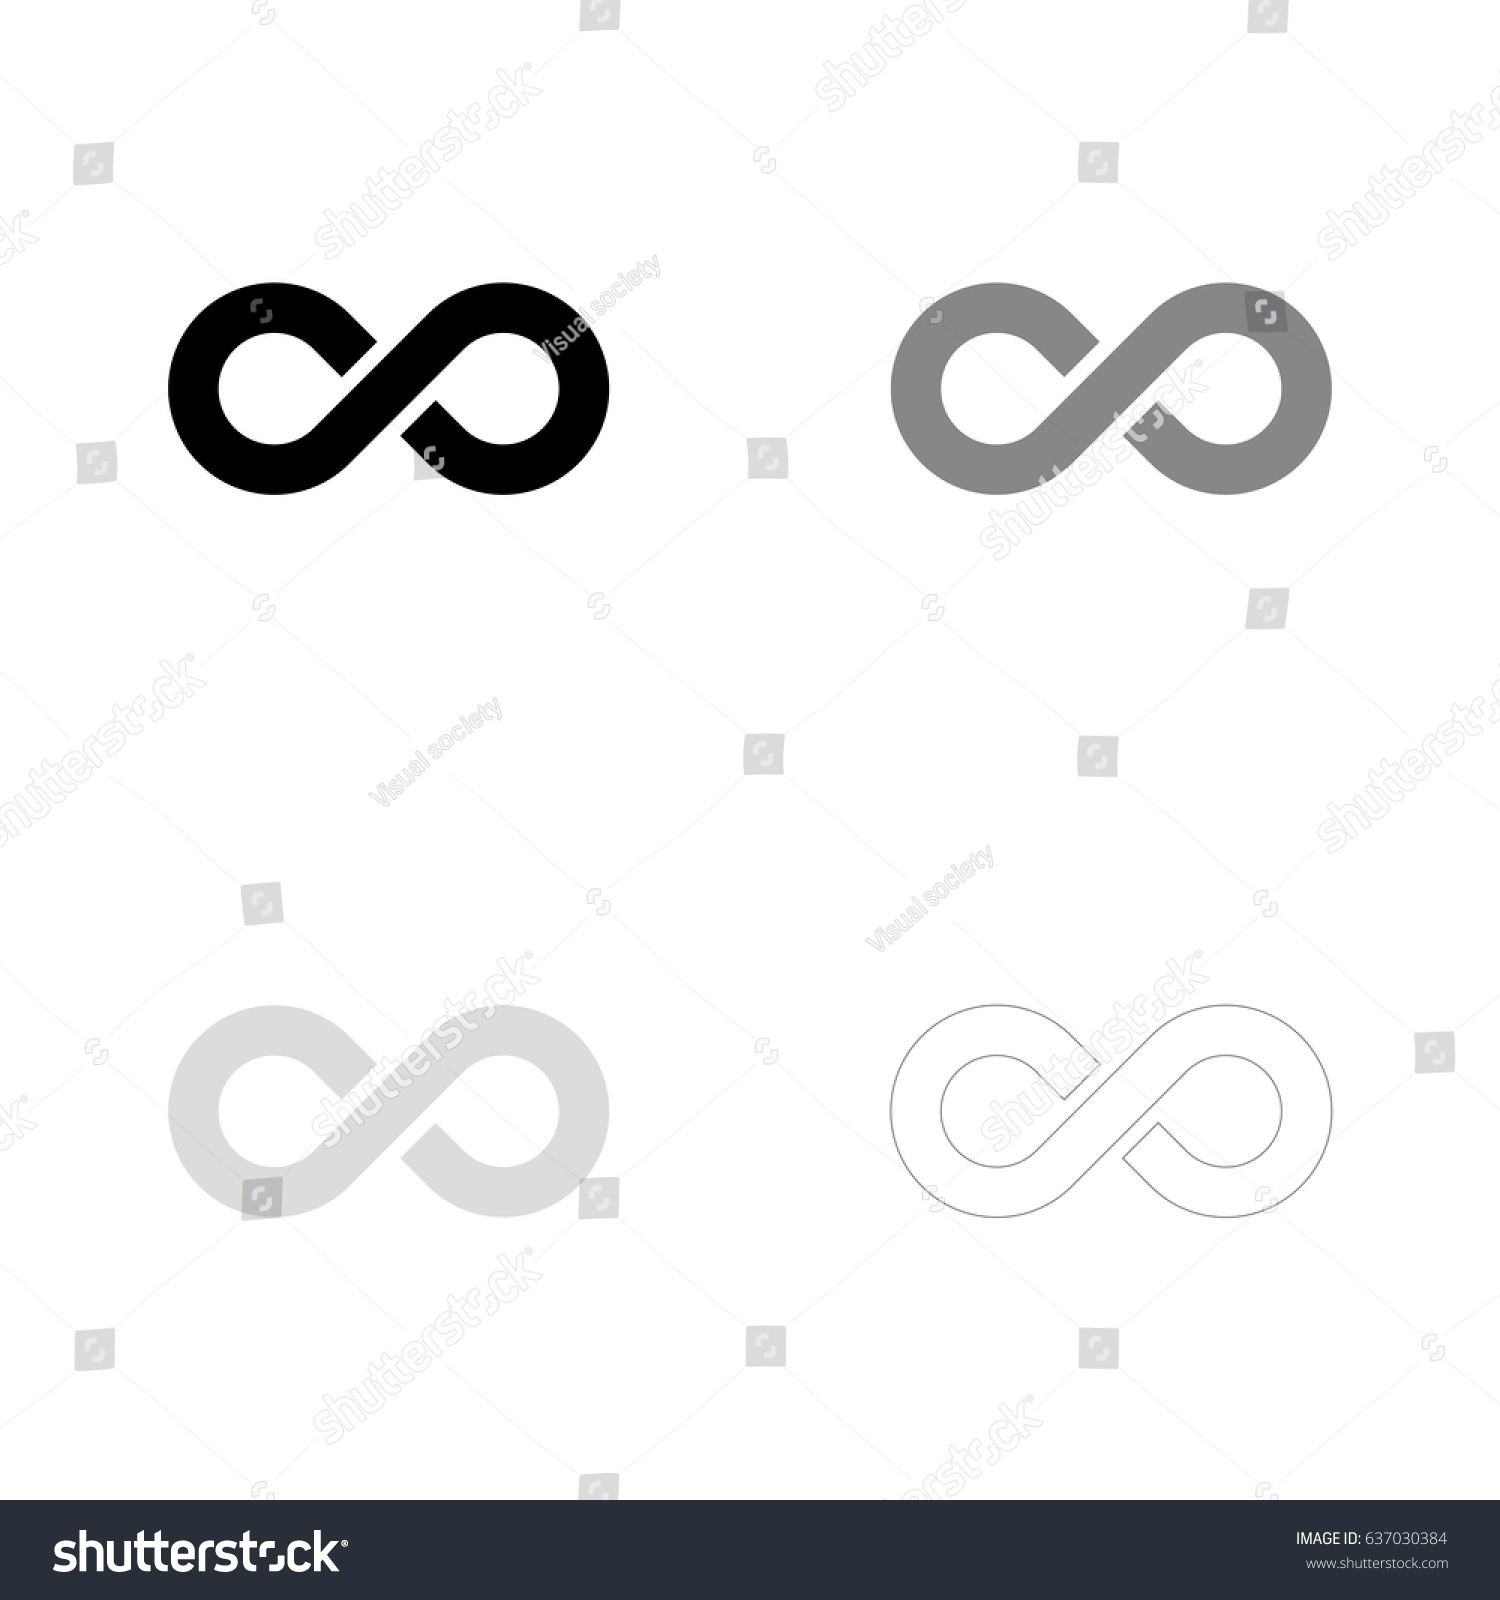 Infinity symbol in black, gray and line art. Vector illustration, easy to edit. #637030384